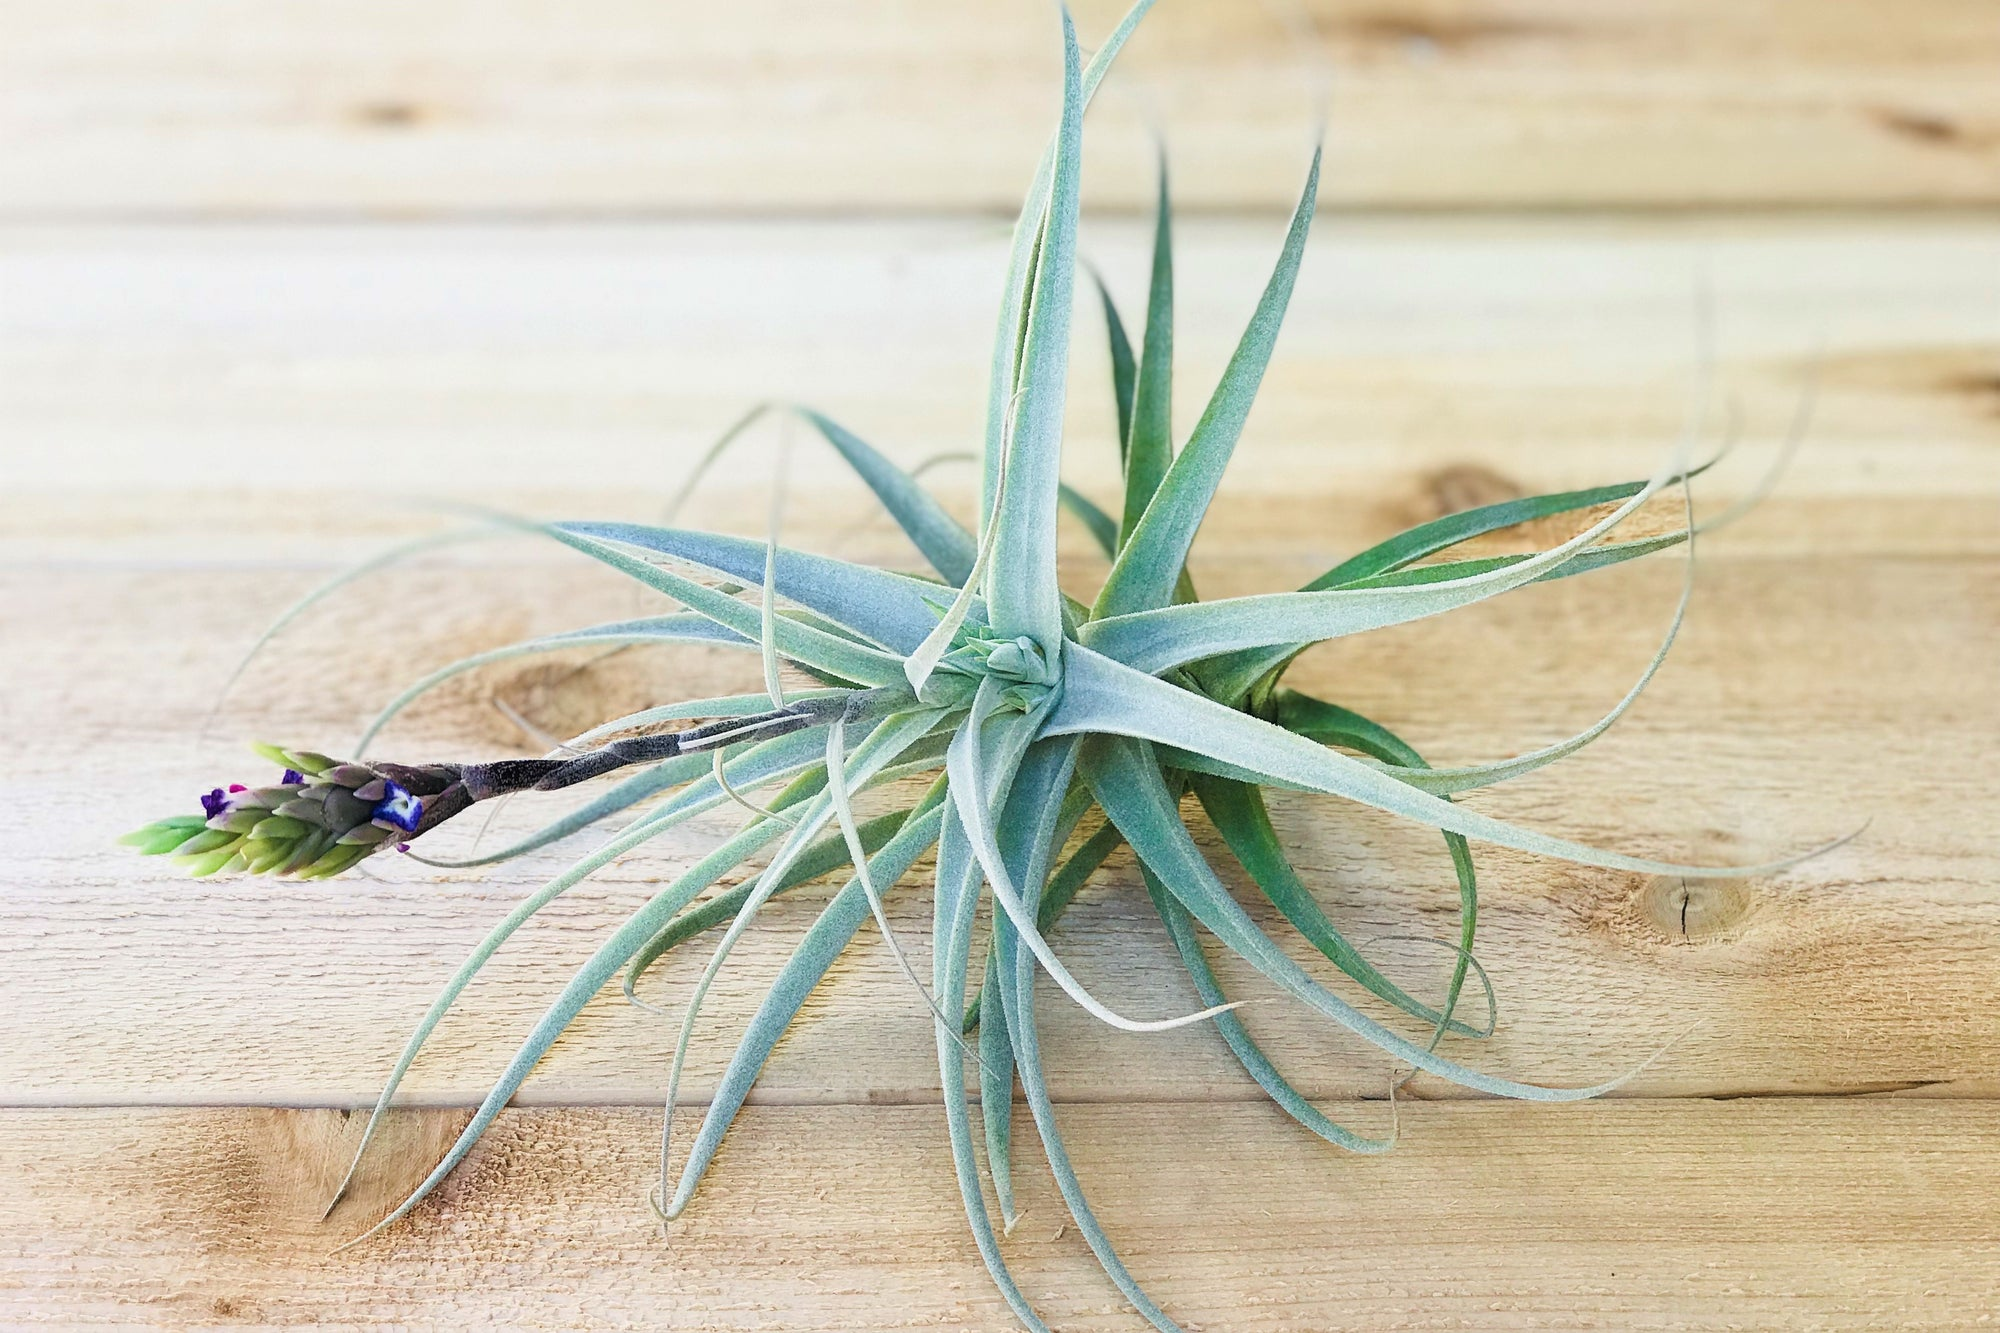 In Bud Now: Tillandsia Cacticola Air Plants - Large Specimen [Single Plant] from AirPlantShop.com